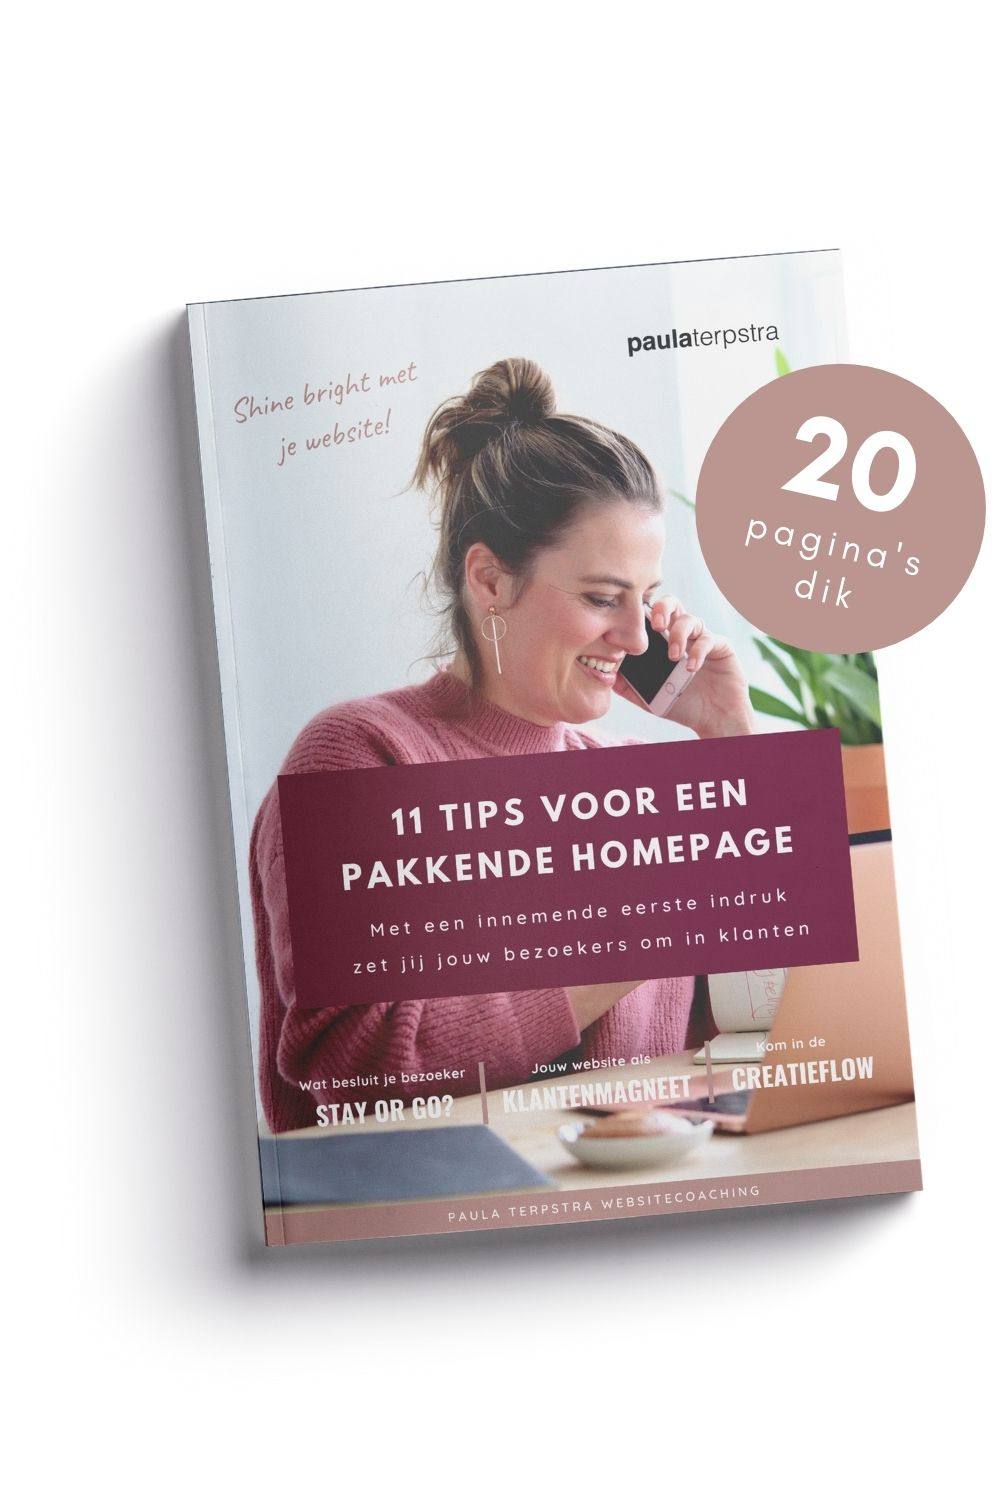 Mock up 11 tips voor een pakkende homepage 20 pagina's dik smal